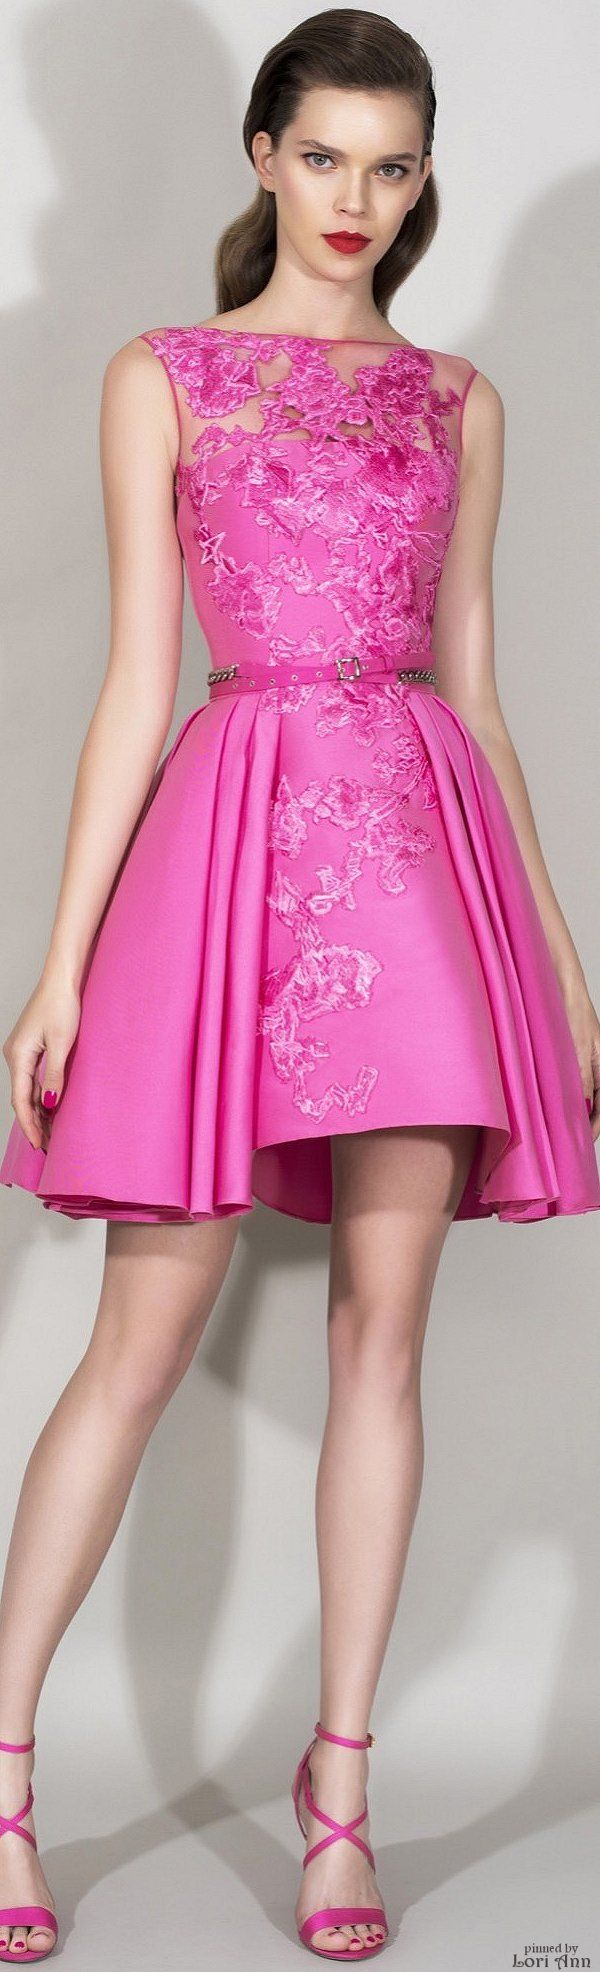 "OH SO PRETTY IN HOT PINK dress - Zuhair Murad Resort 2016...reminiscent of ""Pretty in Pink"""